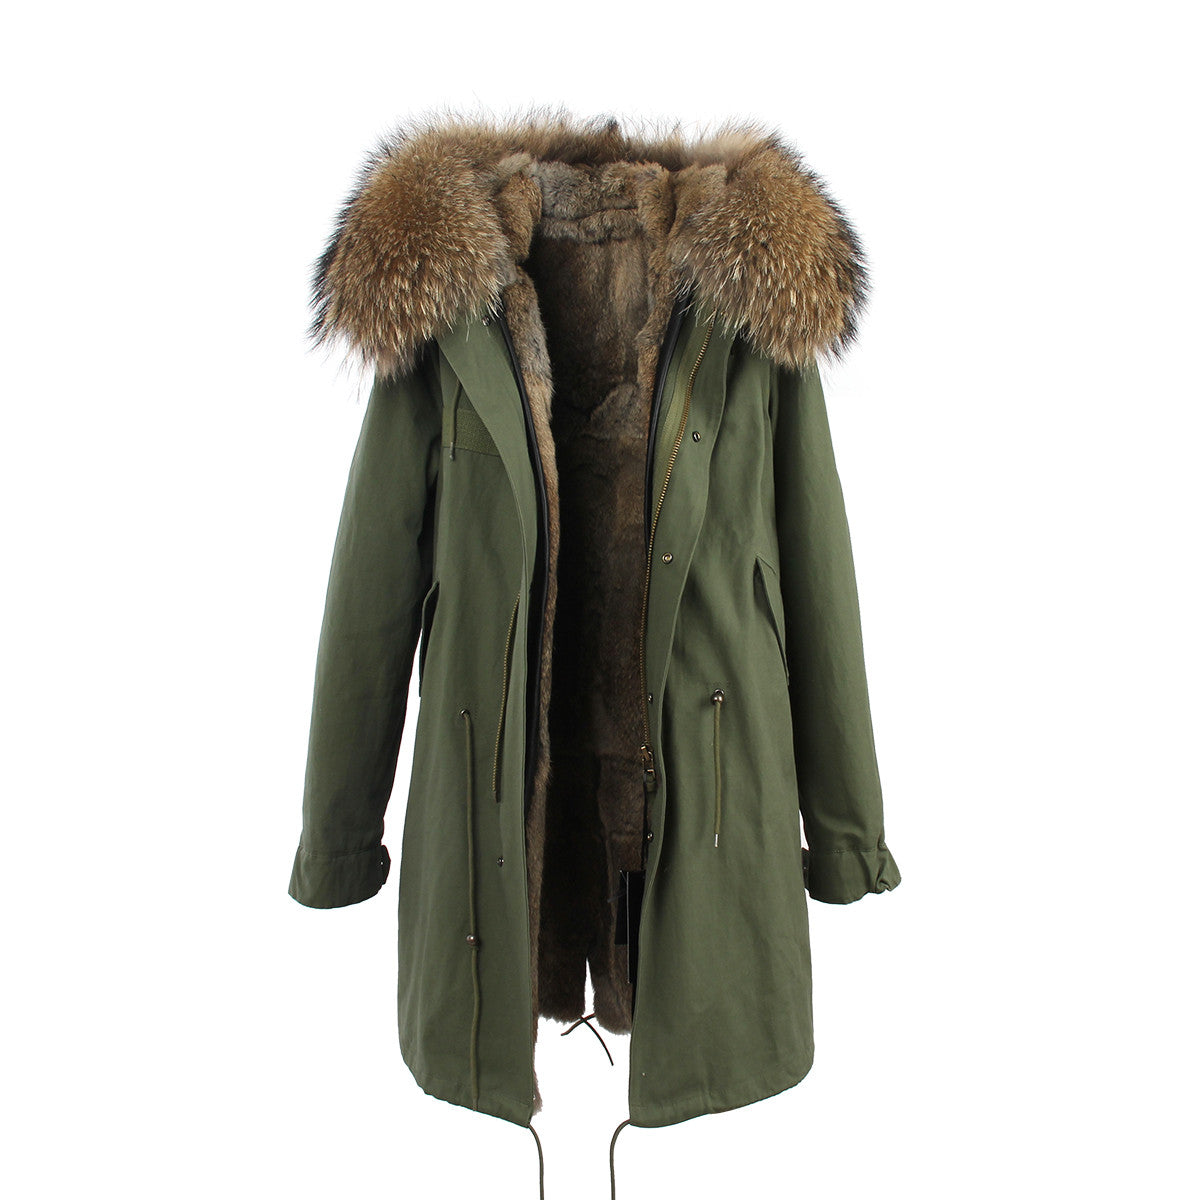 Fashion Women Raccoon Rabbit Fur Coat - All In One Place With Us - 20